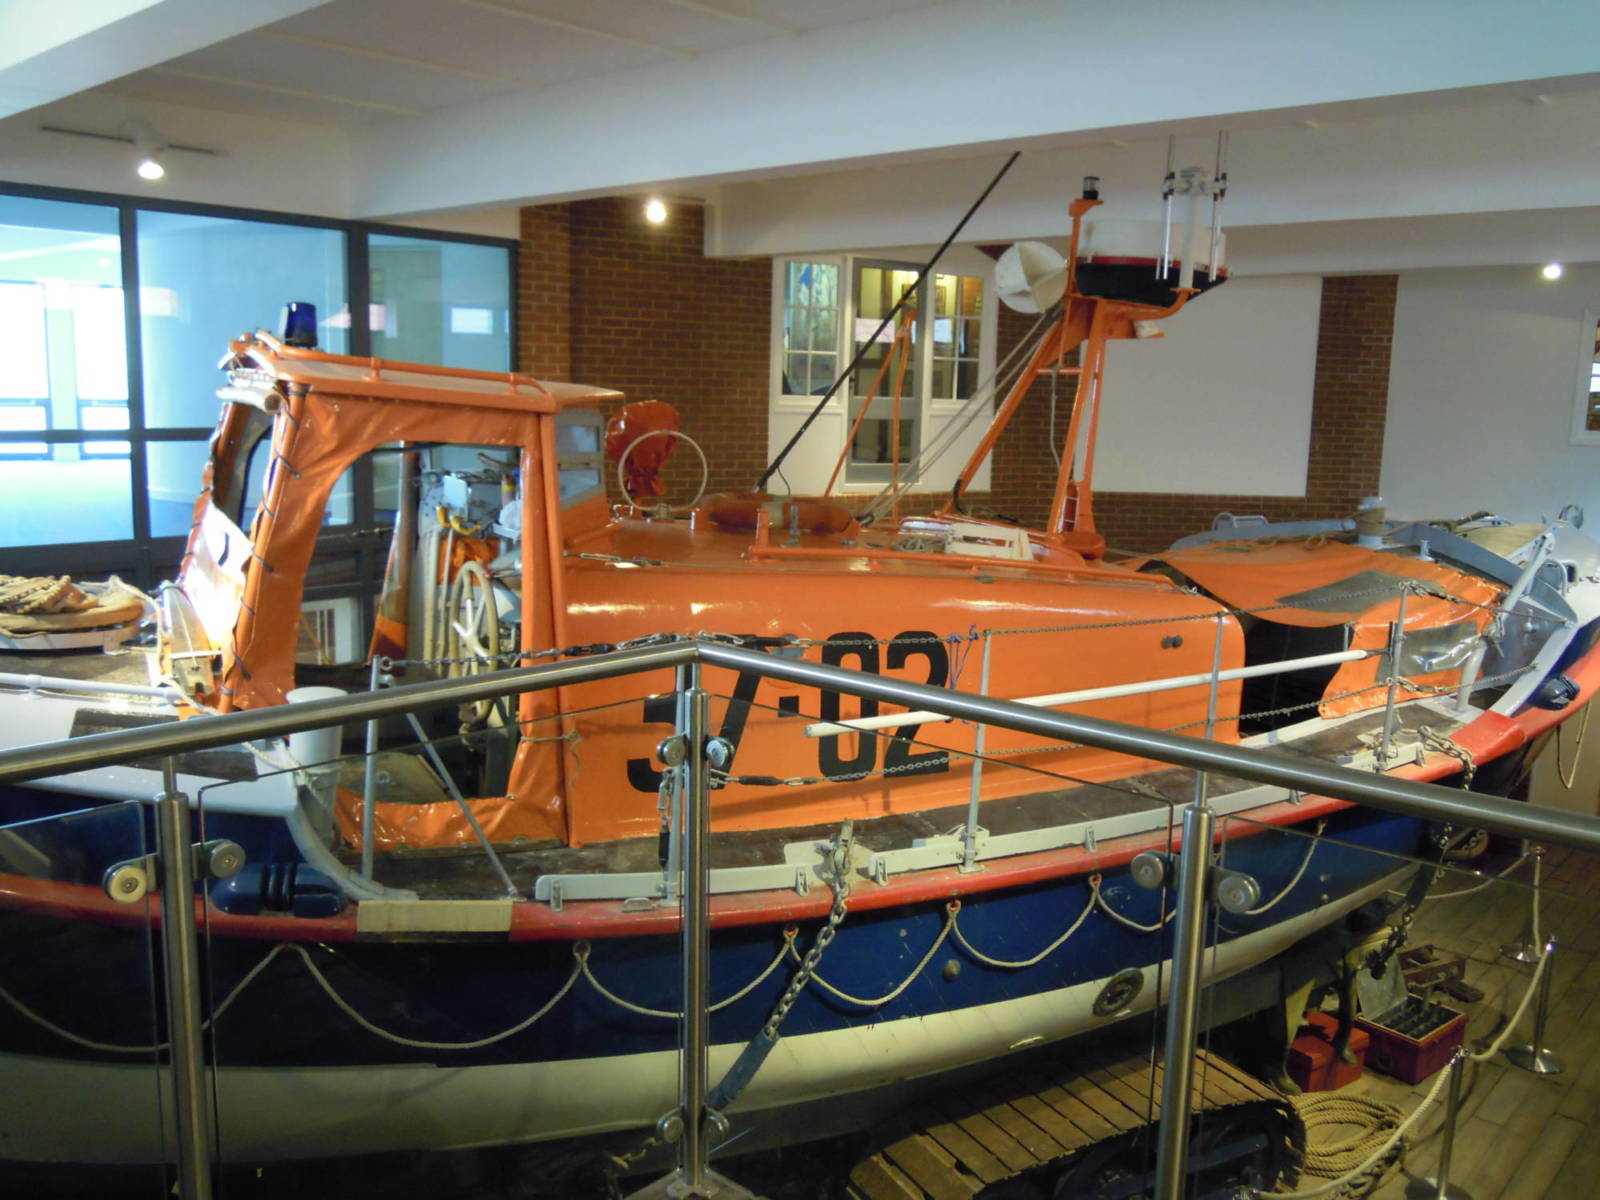 sheringham_lifeboat_the_manchester_unity_of_oddfellows_on960_sheringham_museum_29_03_2010_3